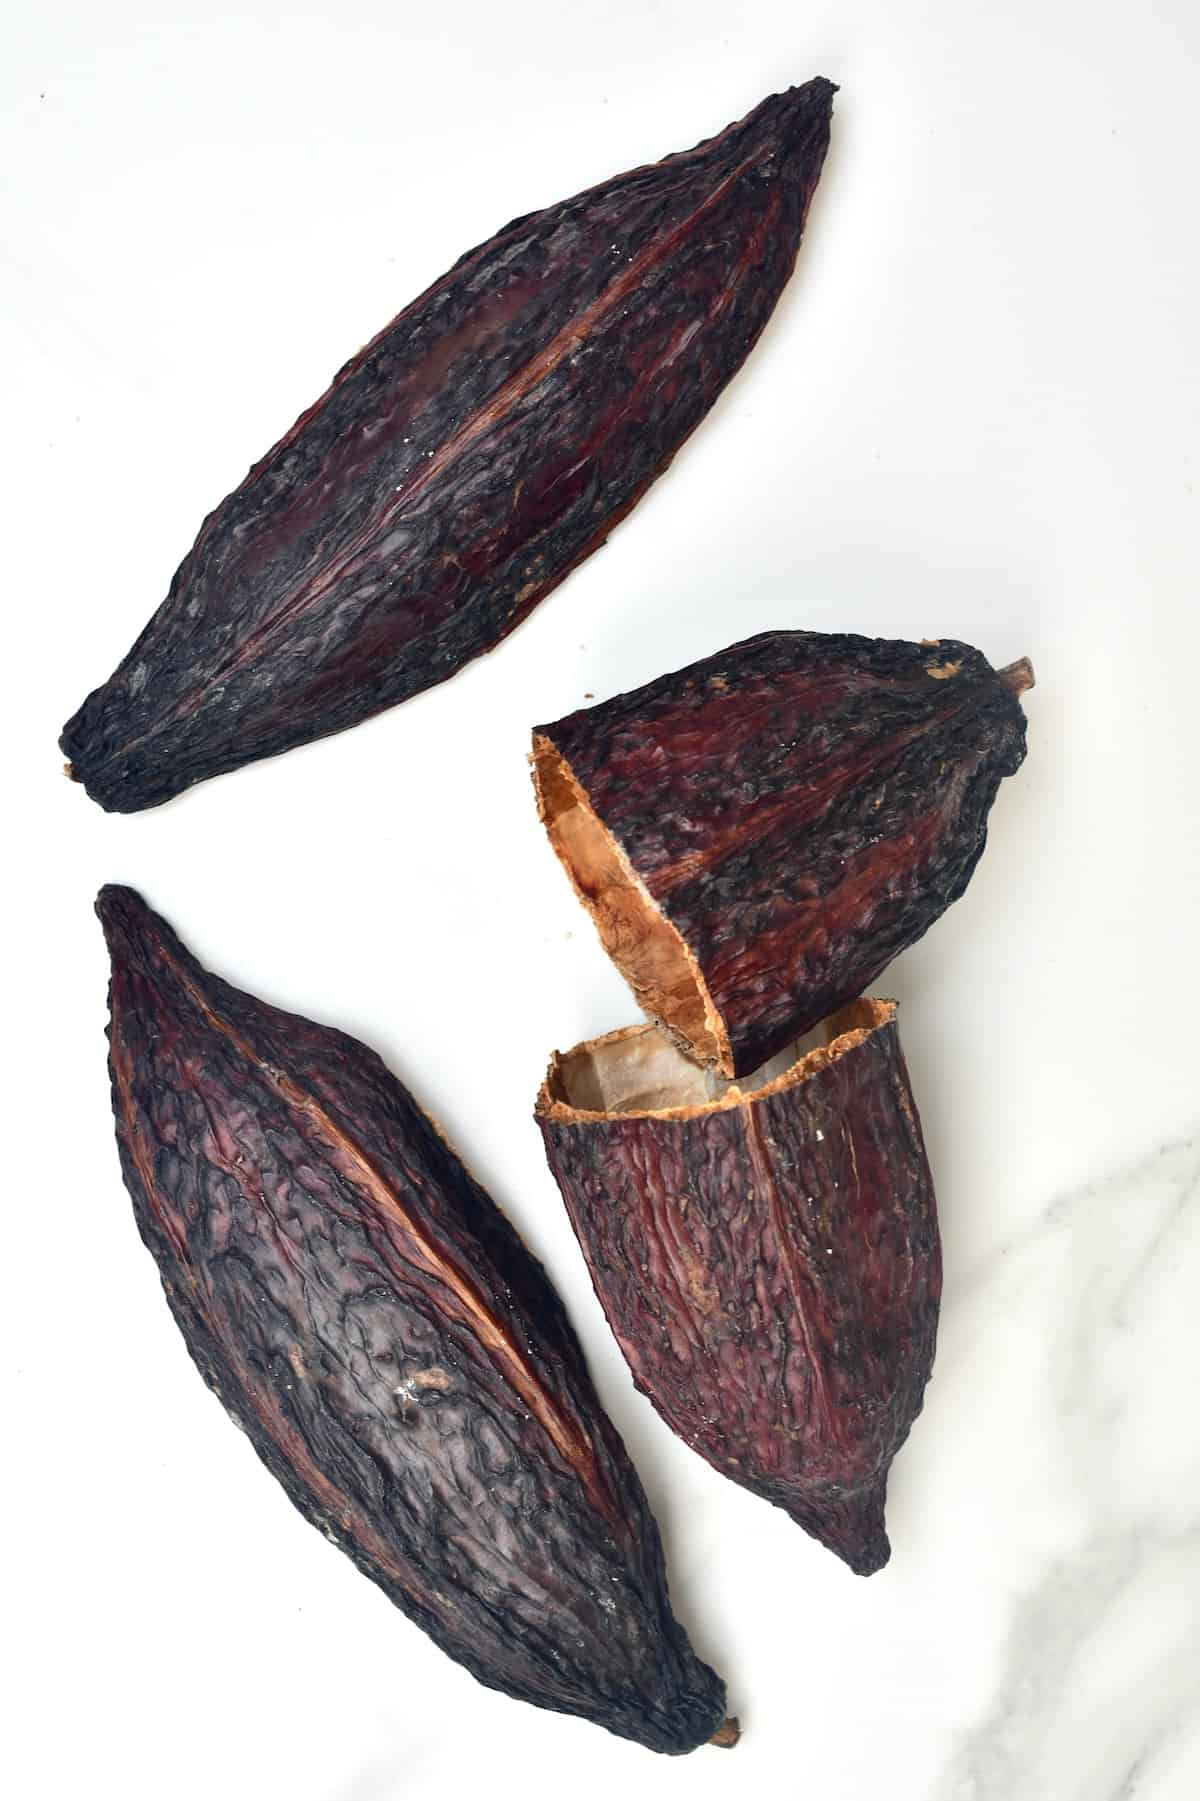 Dried cacao shells